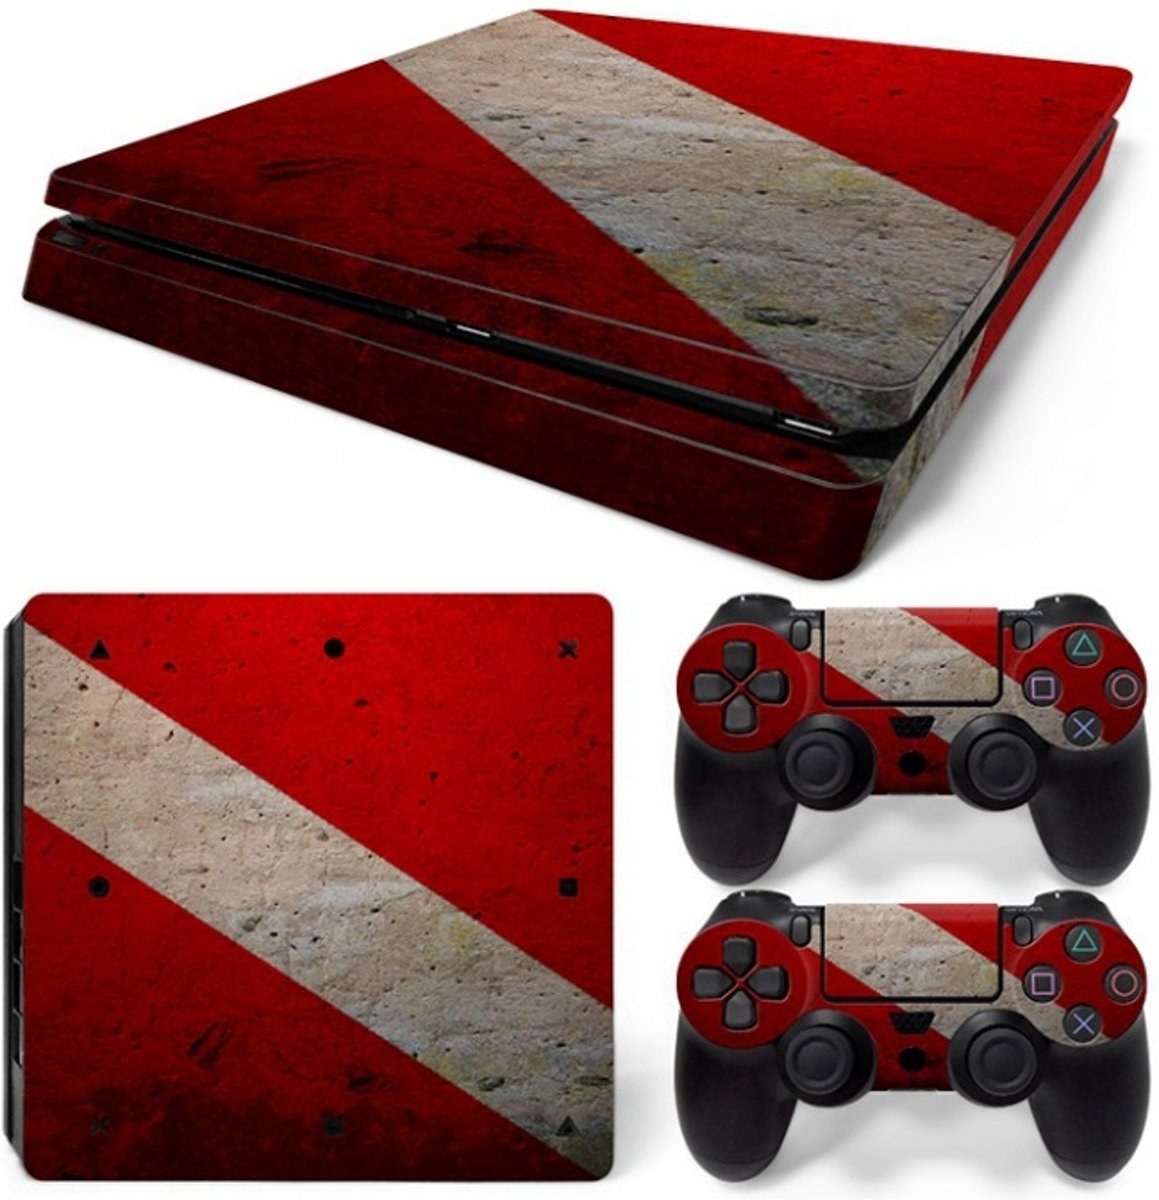 Playstation 4 Slim Sticker | Playstation 4 Slim Console Skin | Red White | Playstation 4 Slim Rood Wit  Skin Sticker | Console Skin + 2 Controller Skins